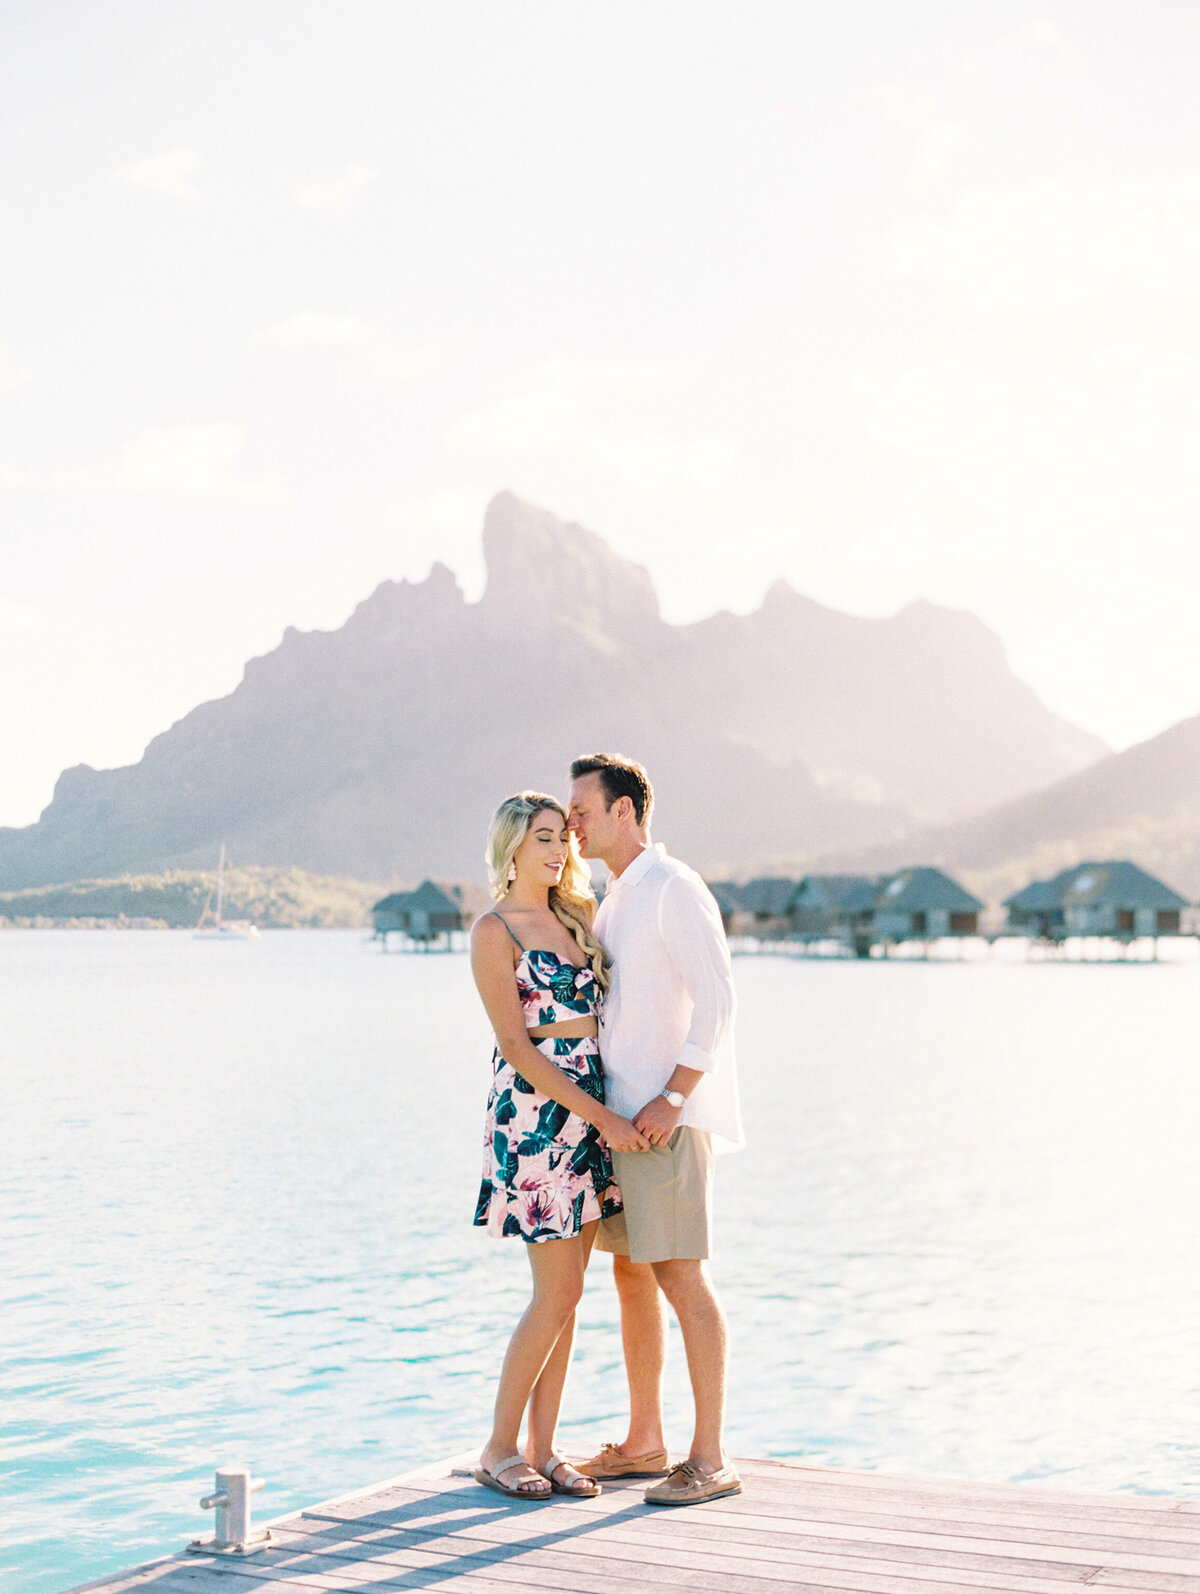 Couple soft colors Bora Bora Sunset love smile elegant dress